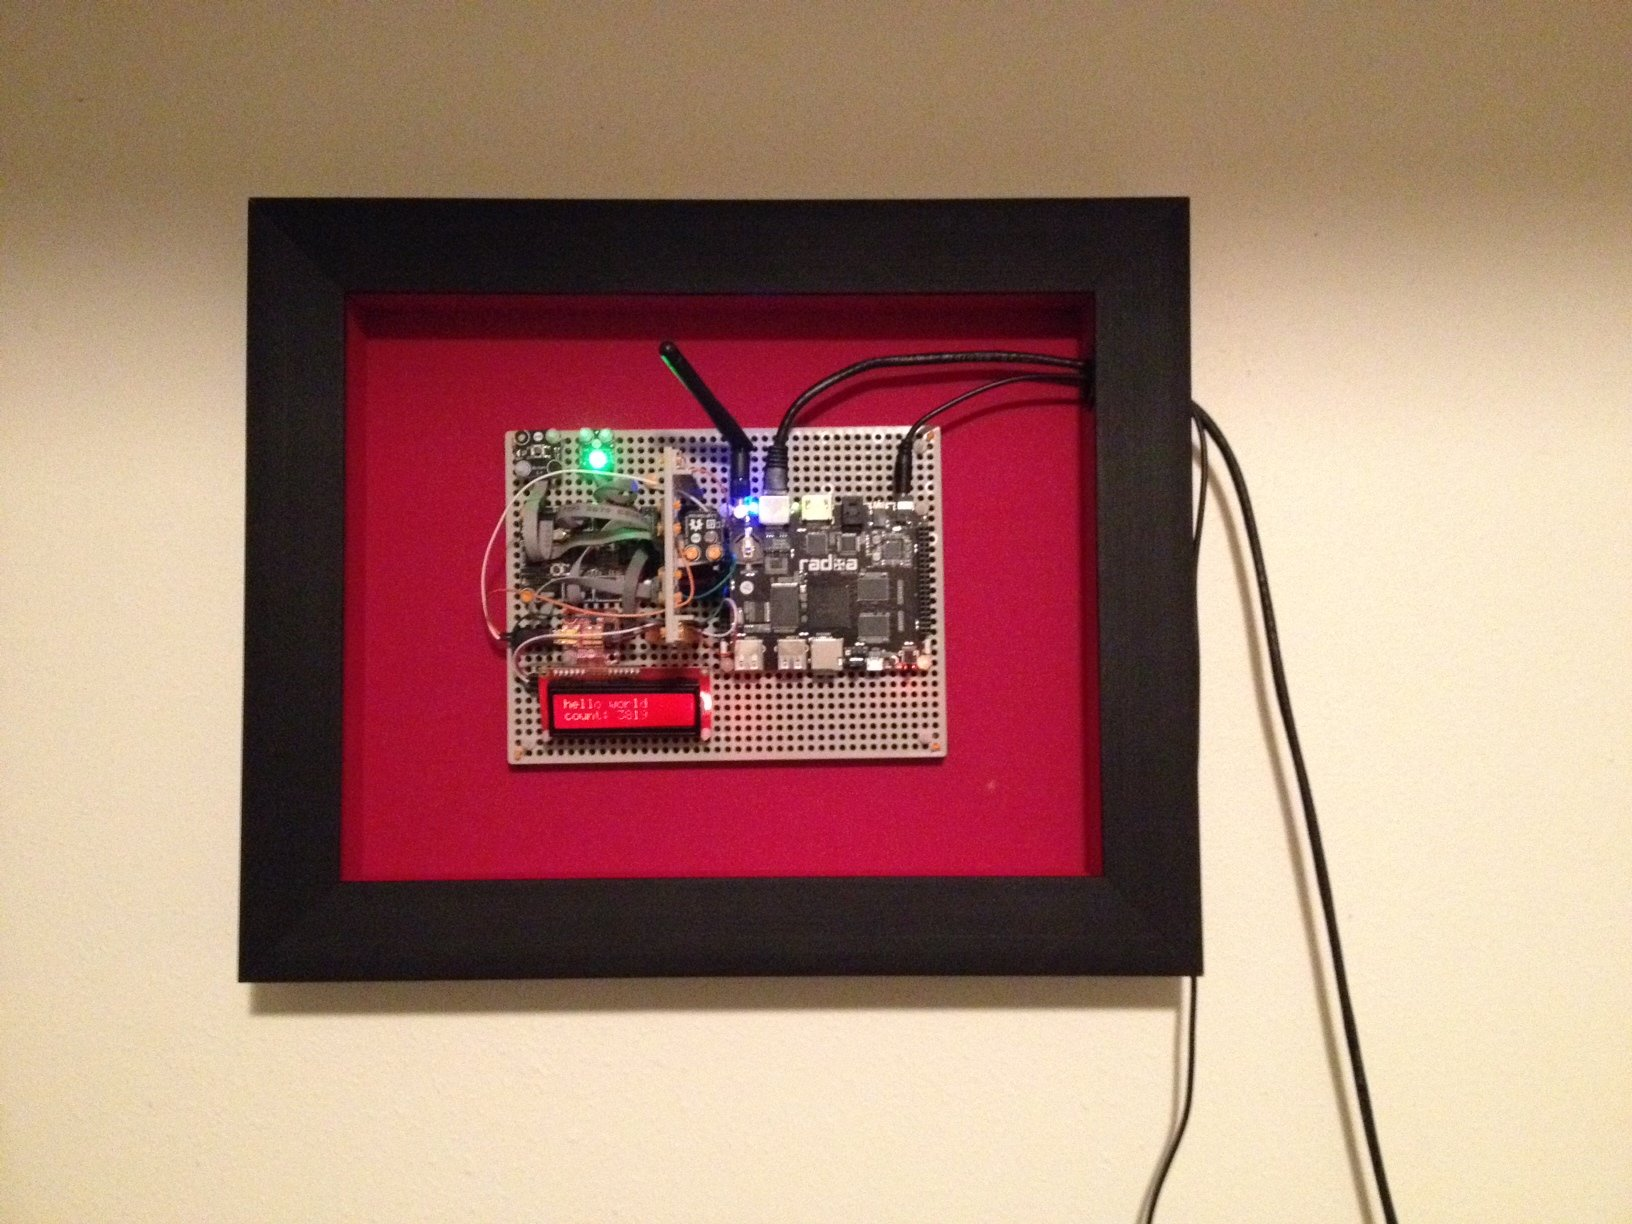 raspberry_pi_rock1-framed.jpg